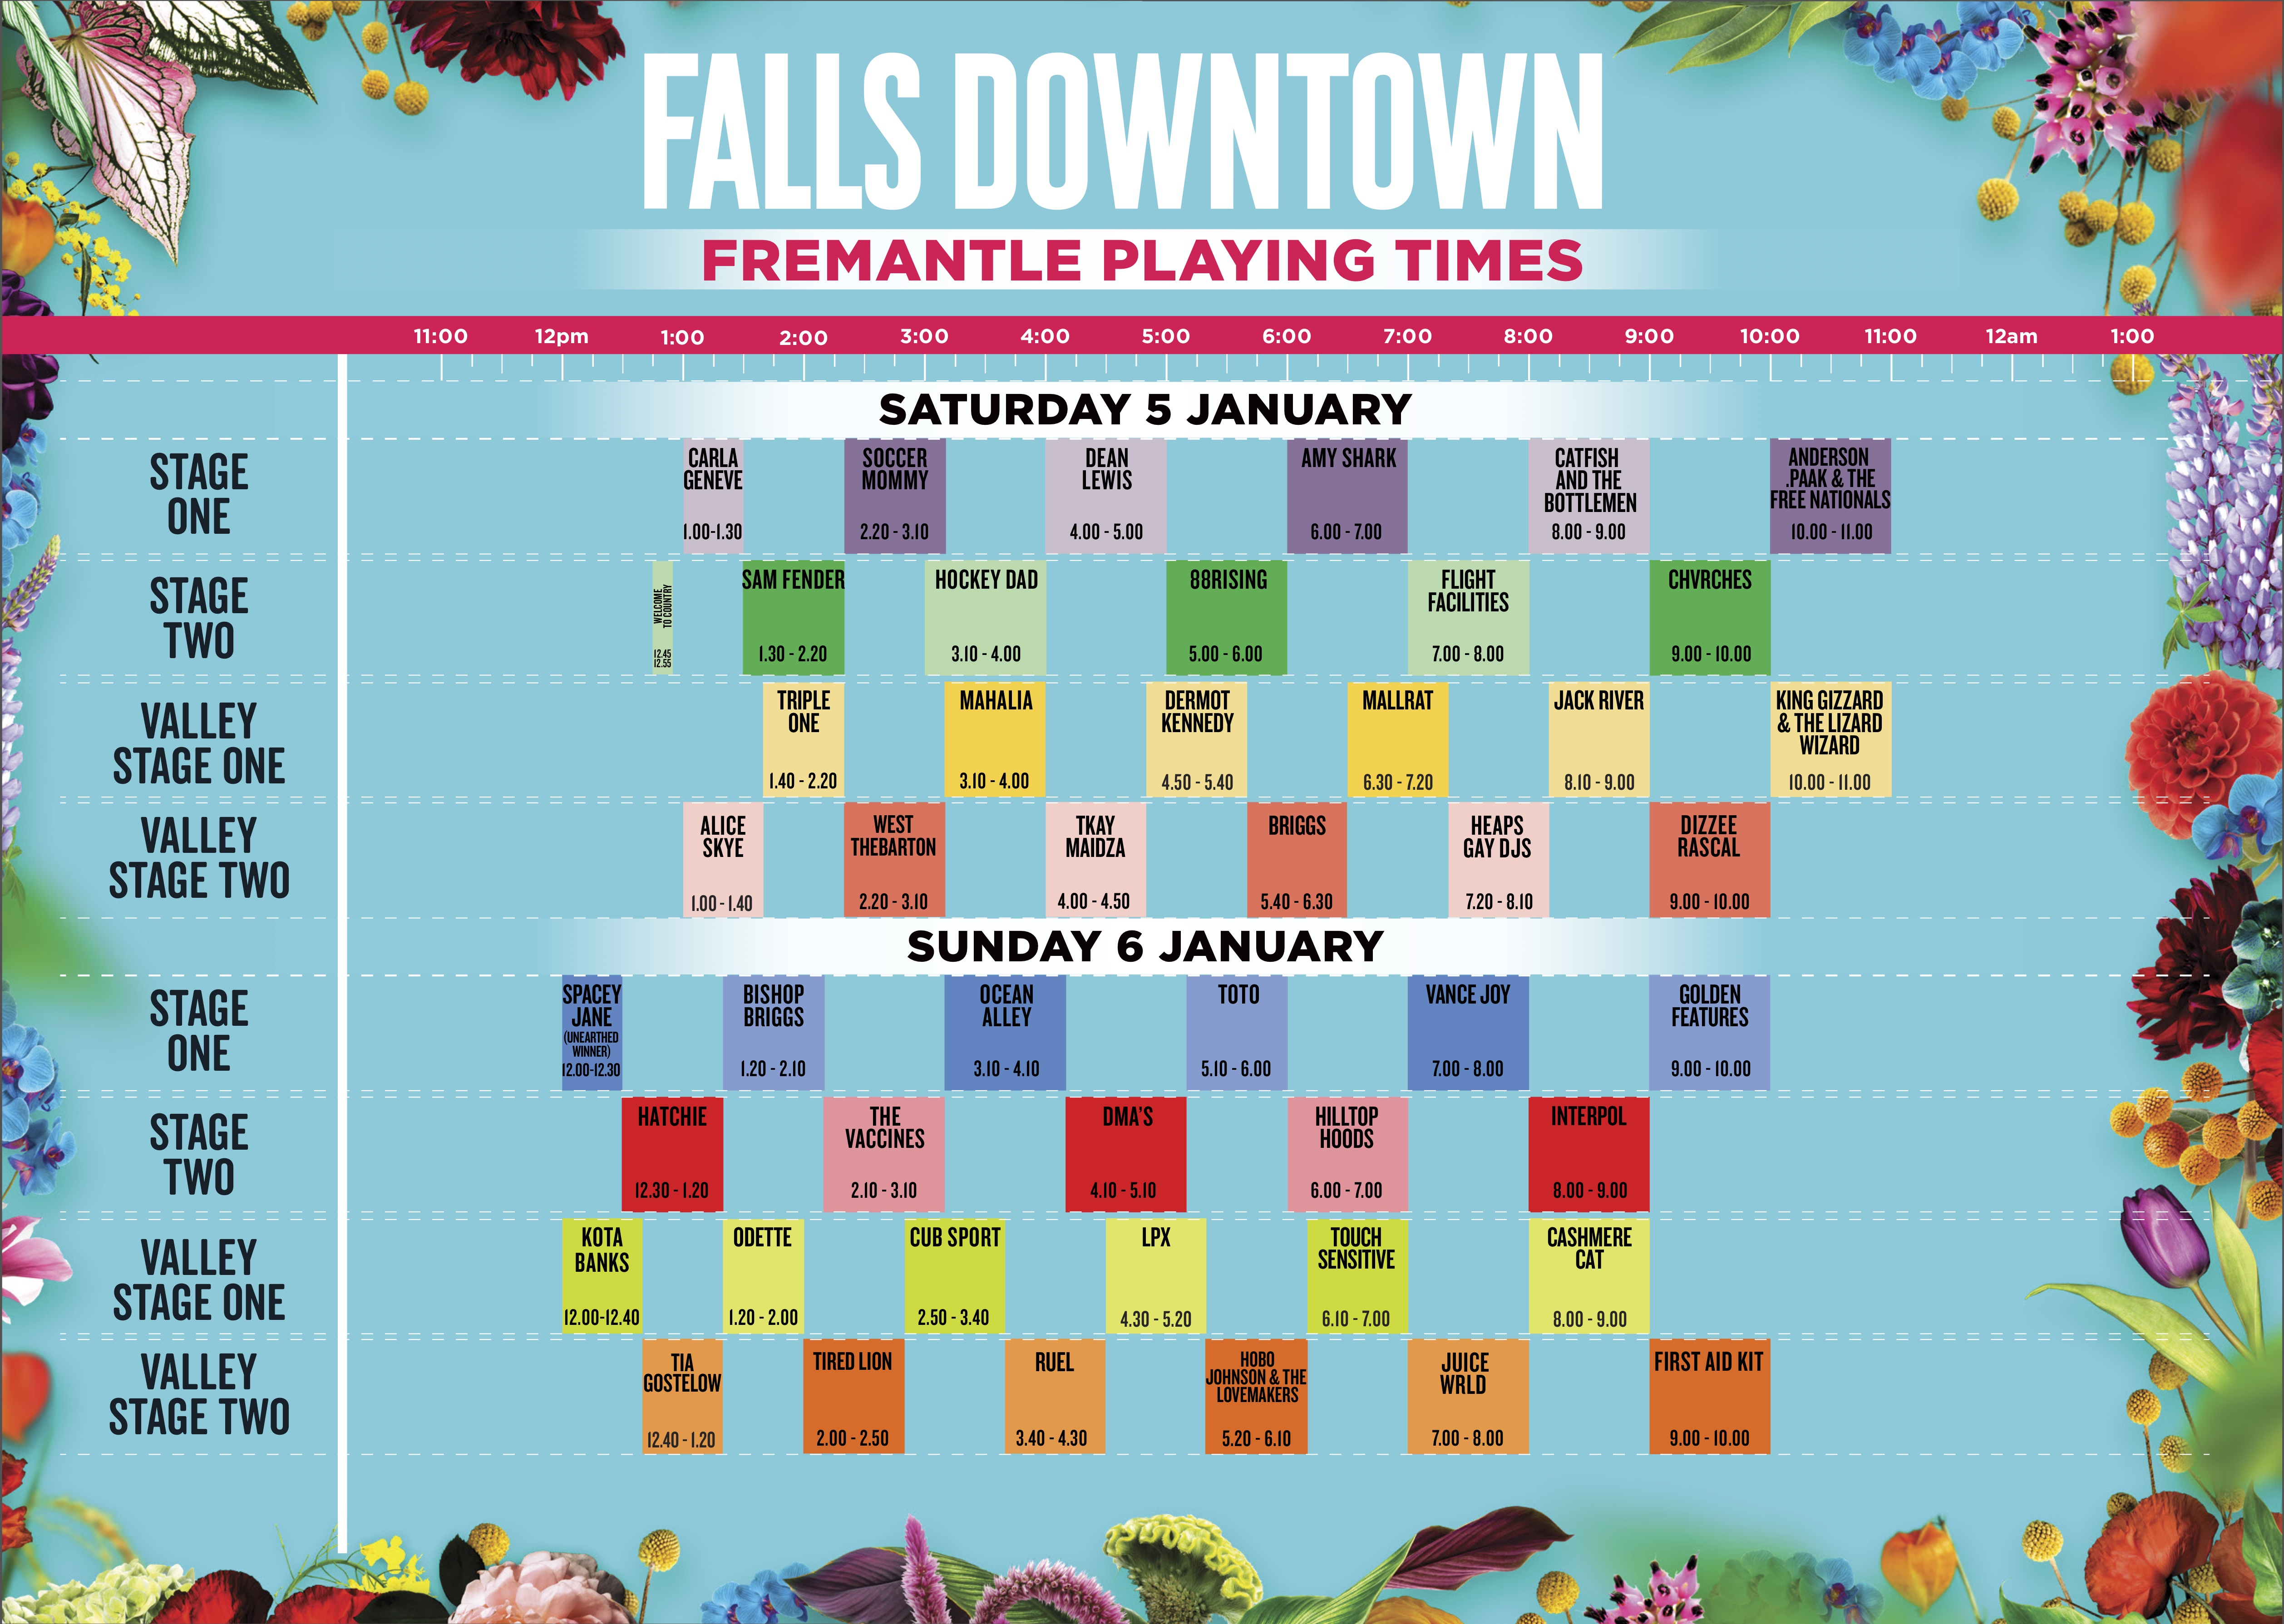 Falls Festival 2018 2019 Set Times Announced Utter Buzz 1990 Nissan 300zx Wiring Diagram Fremantle Click To Expand